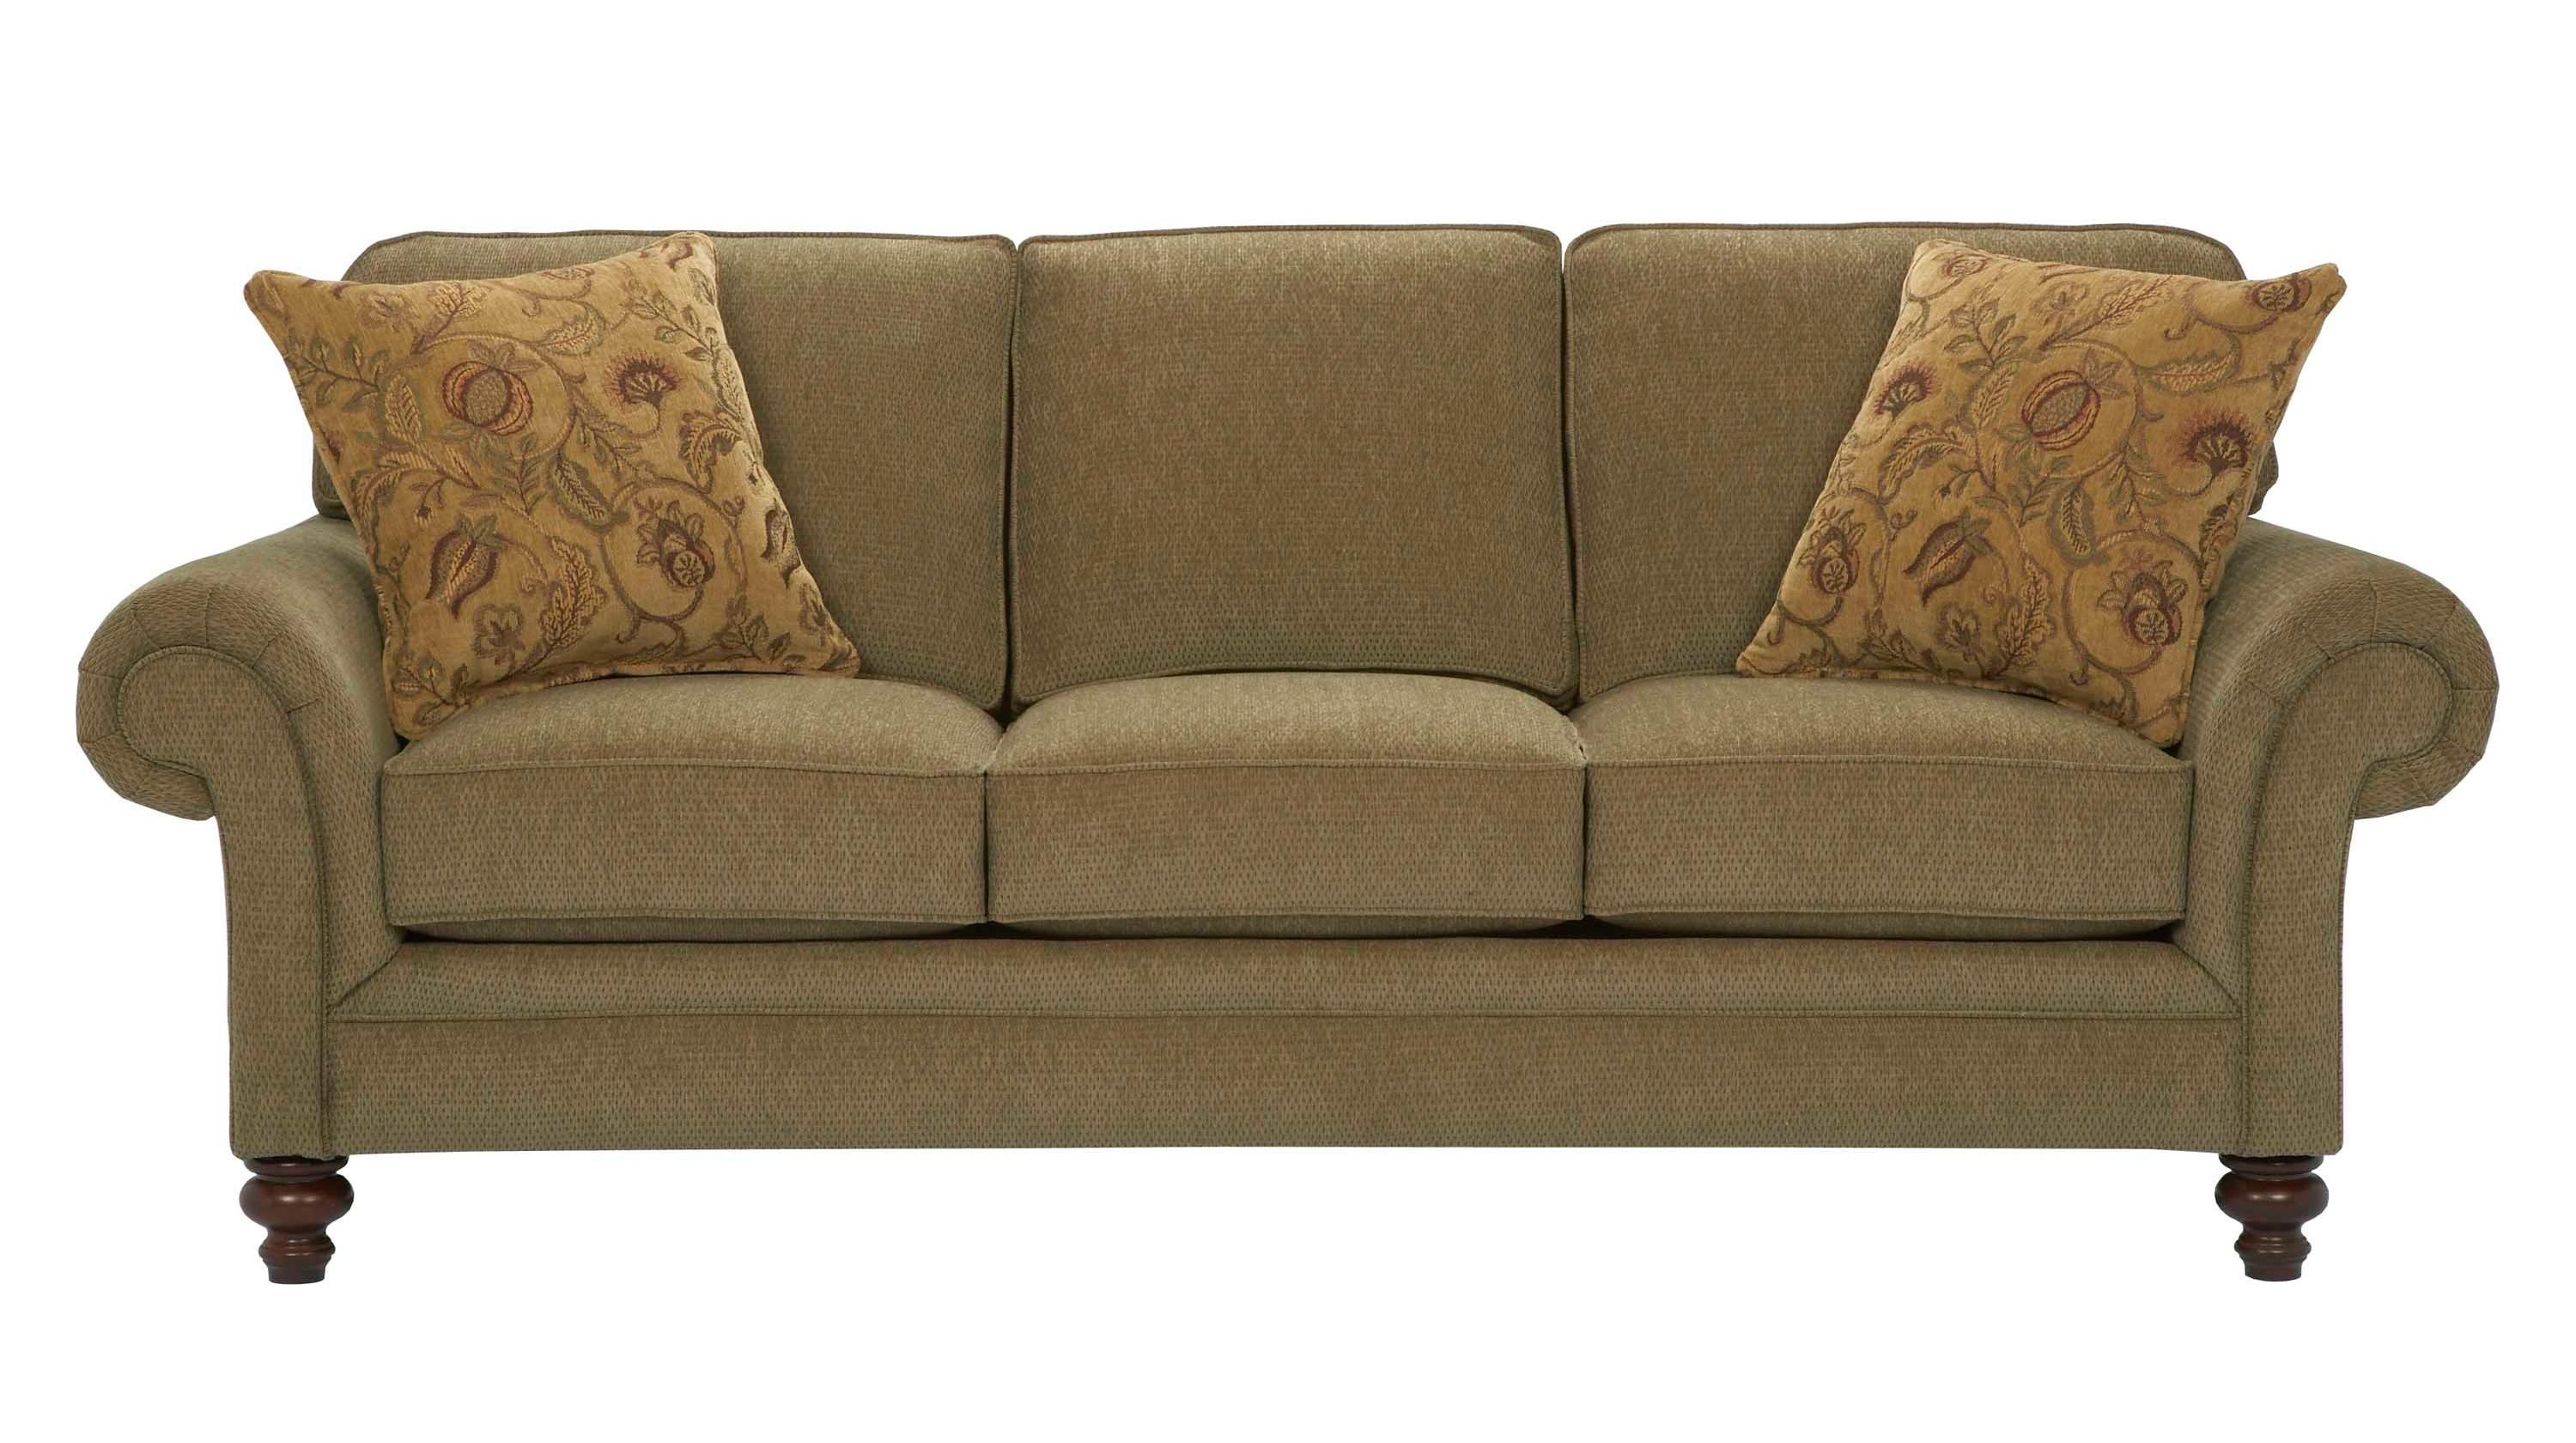 20 Best Ideas Broyhill Perspectives Sofas  Sofa Ideas